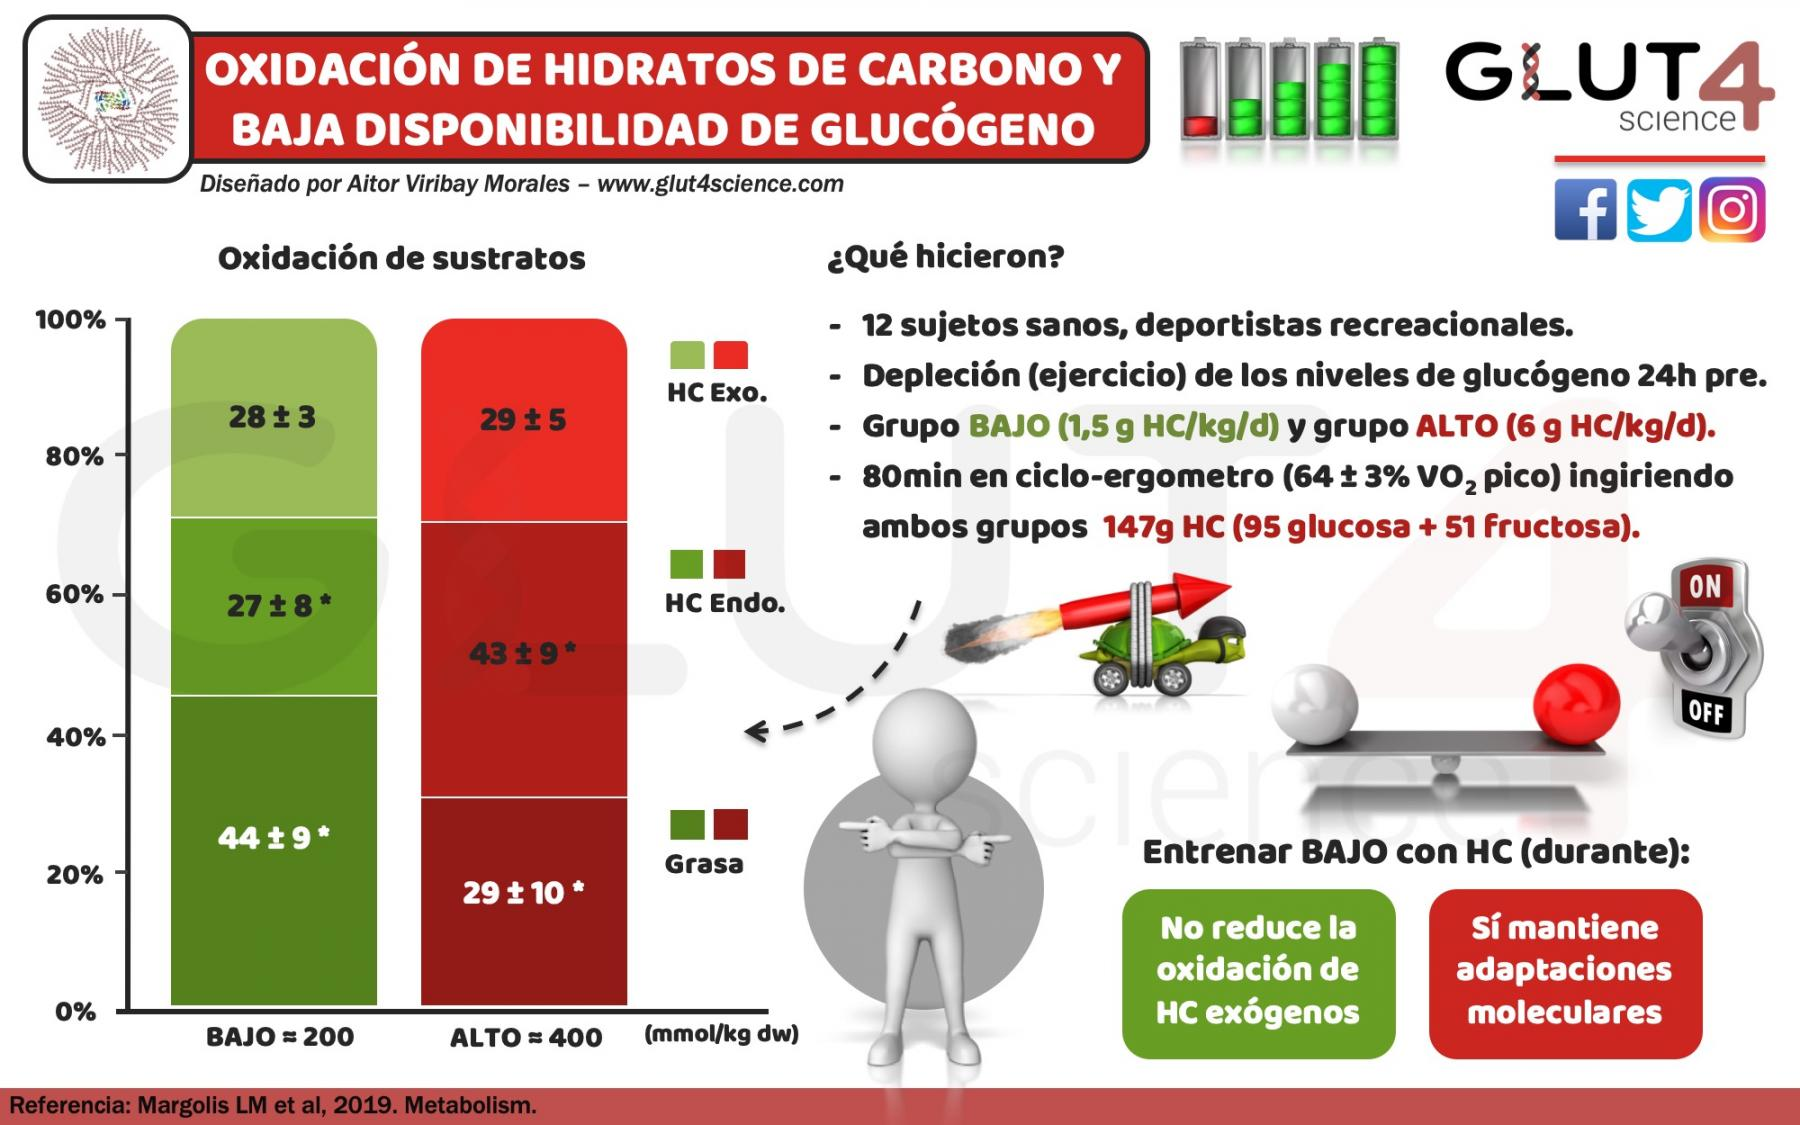 Oxidación de Hidratos de Carbono en Low Carb